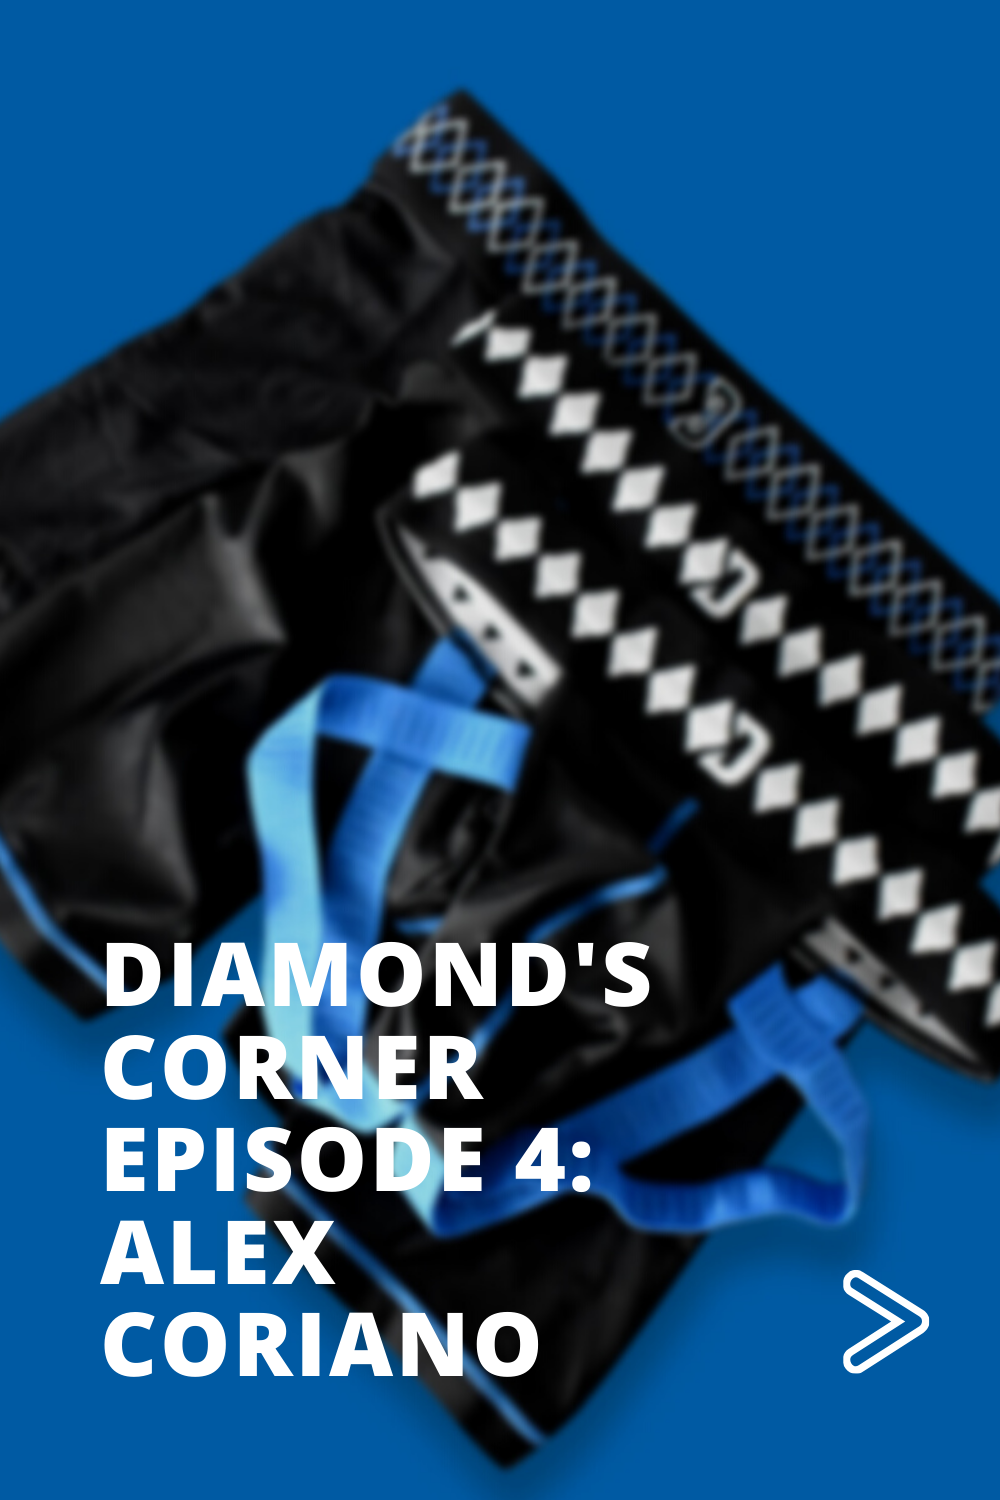 Diamond's Corner Episode 4: Alex Coriano